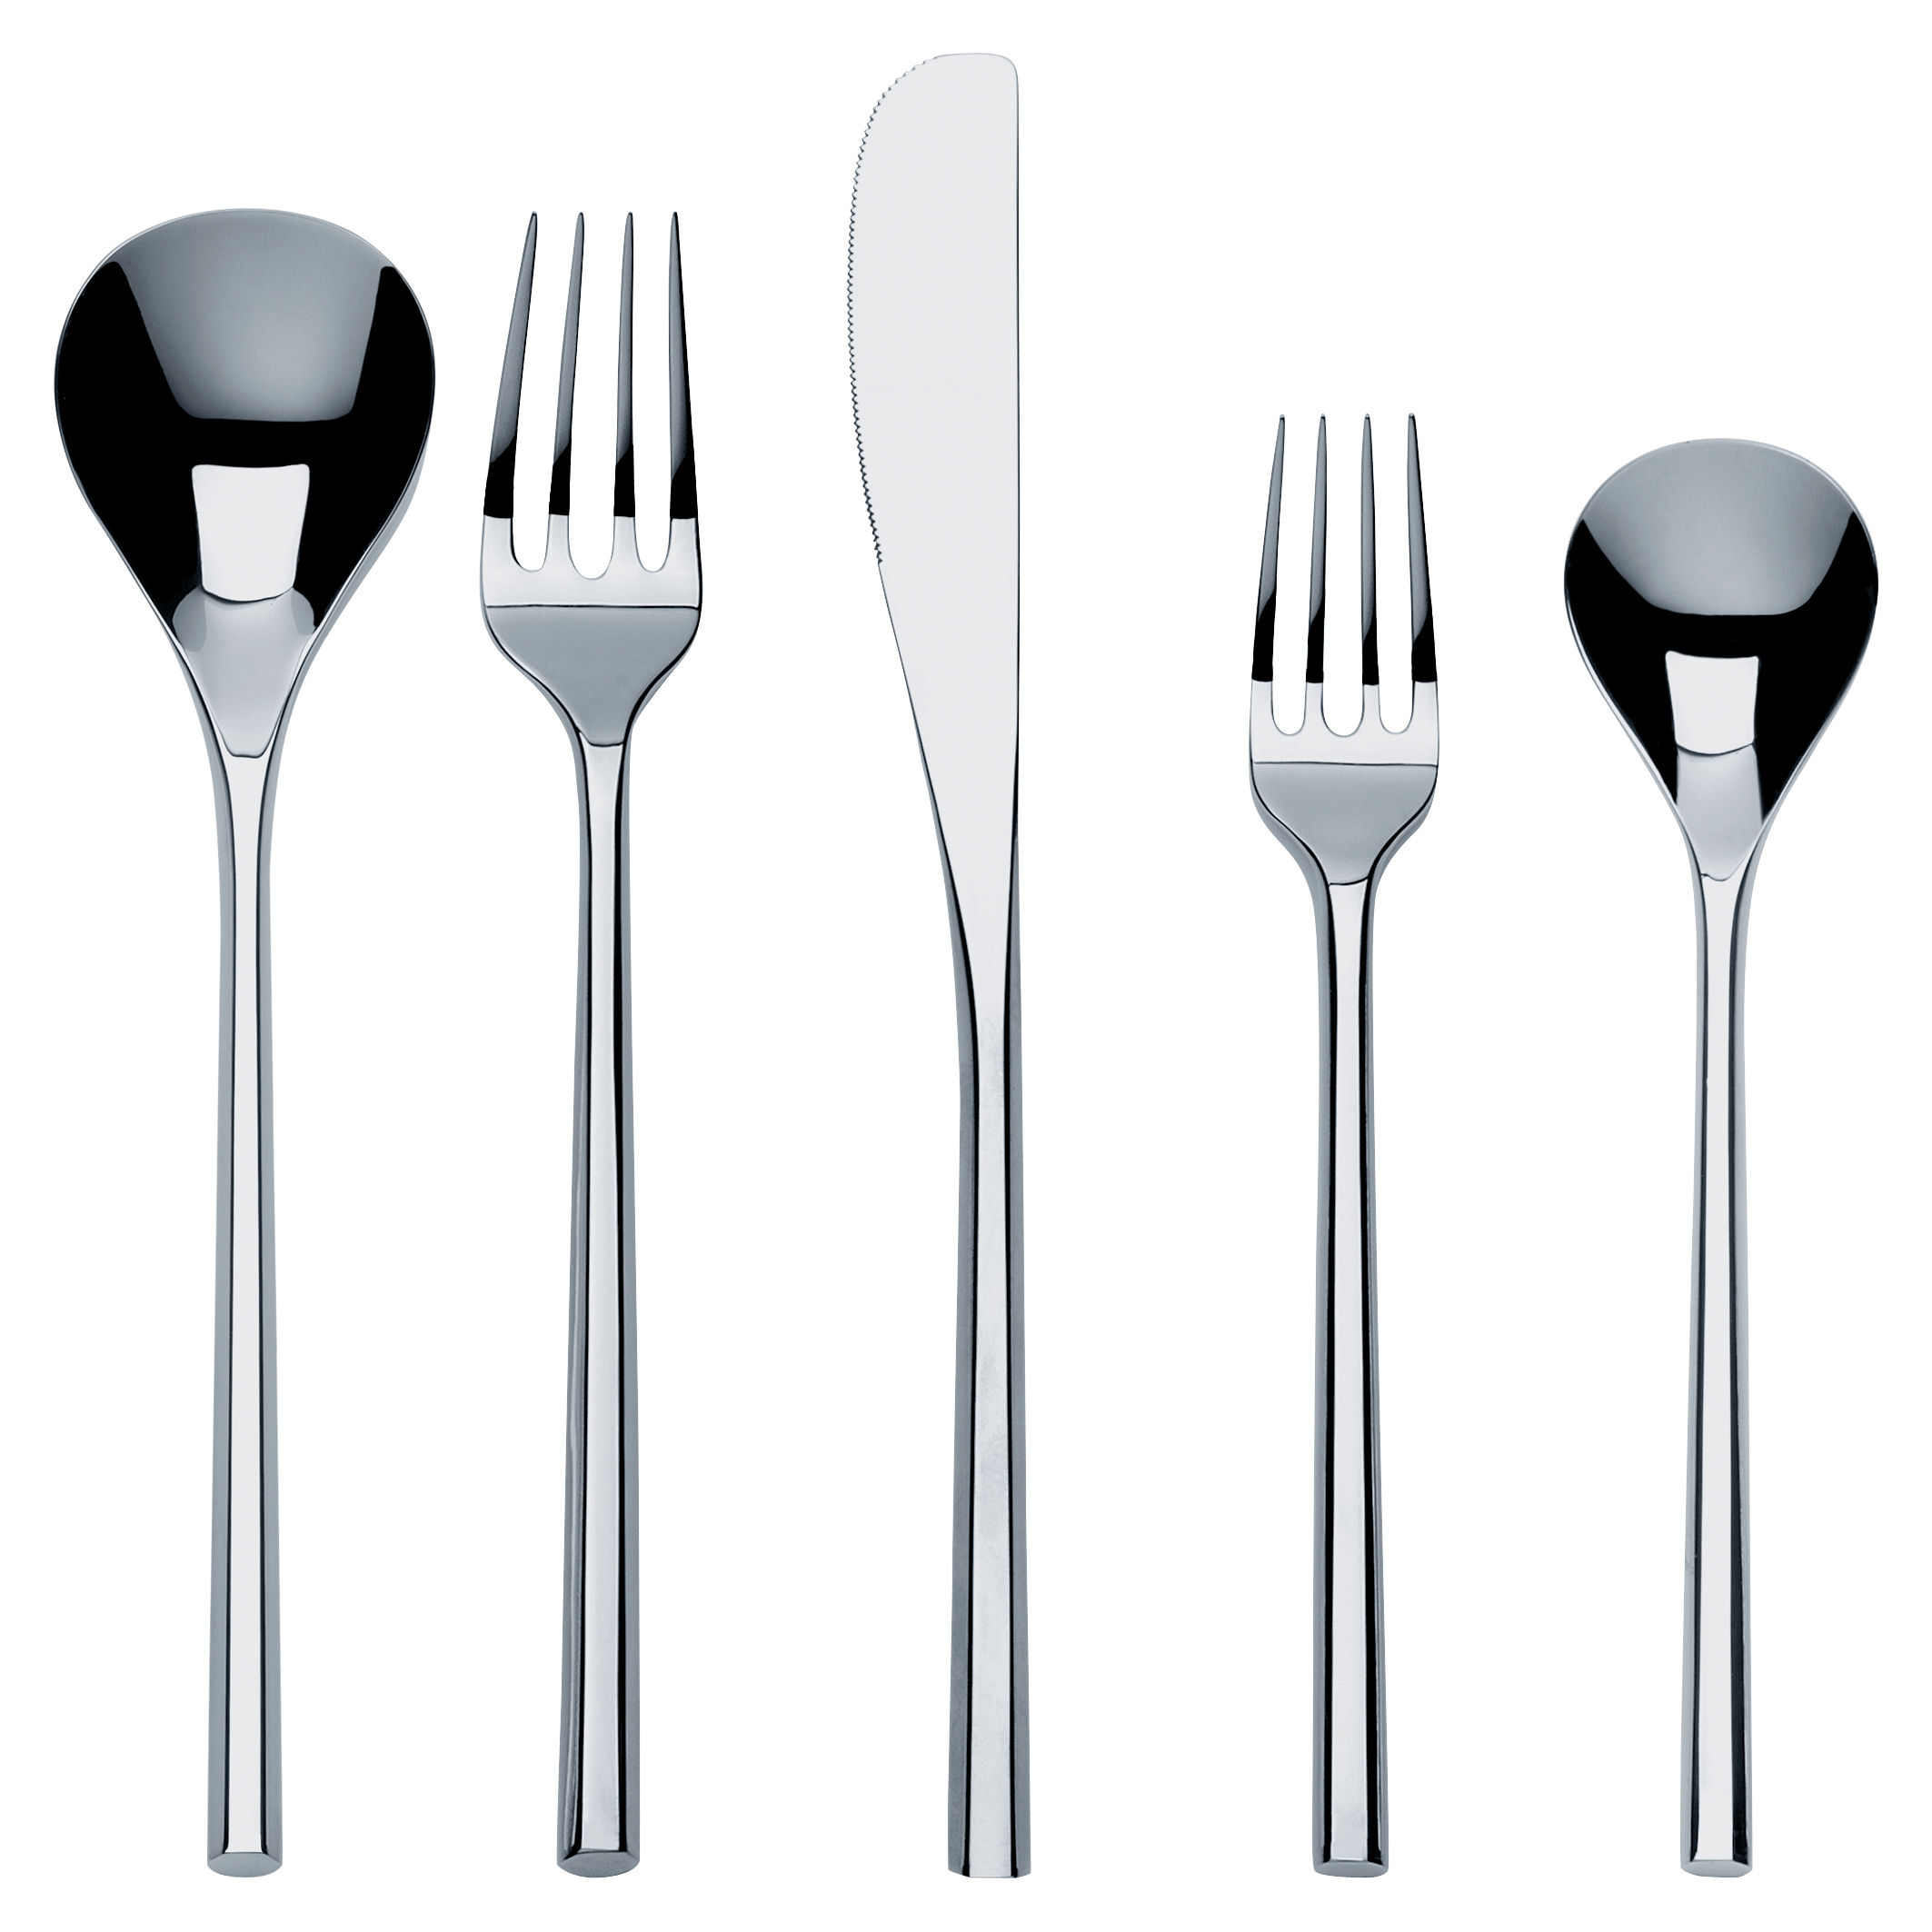 Arts de la table - Couverts de table - Set de couverts Mu / Ensemble 5 couverts - Alessi - Set 1 personne / Acier - Acier inoxydable 18/10